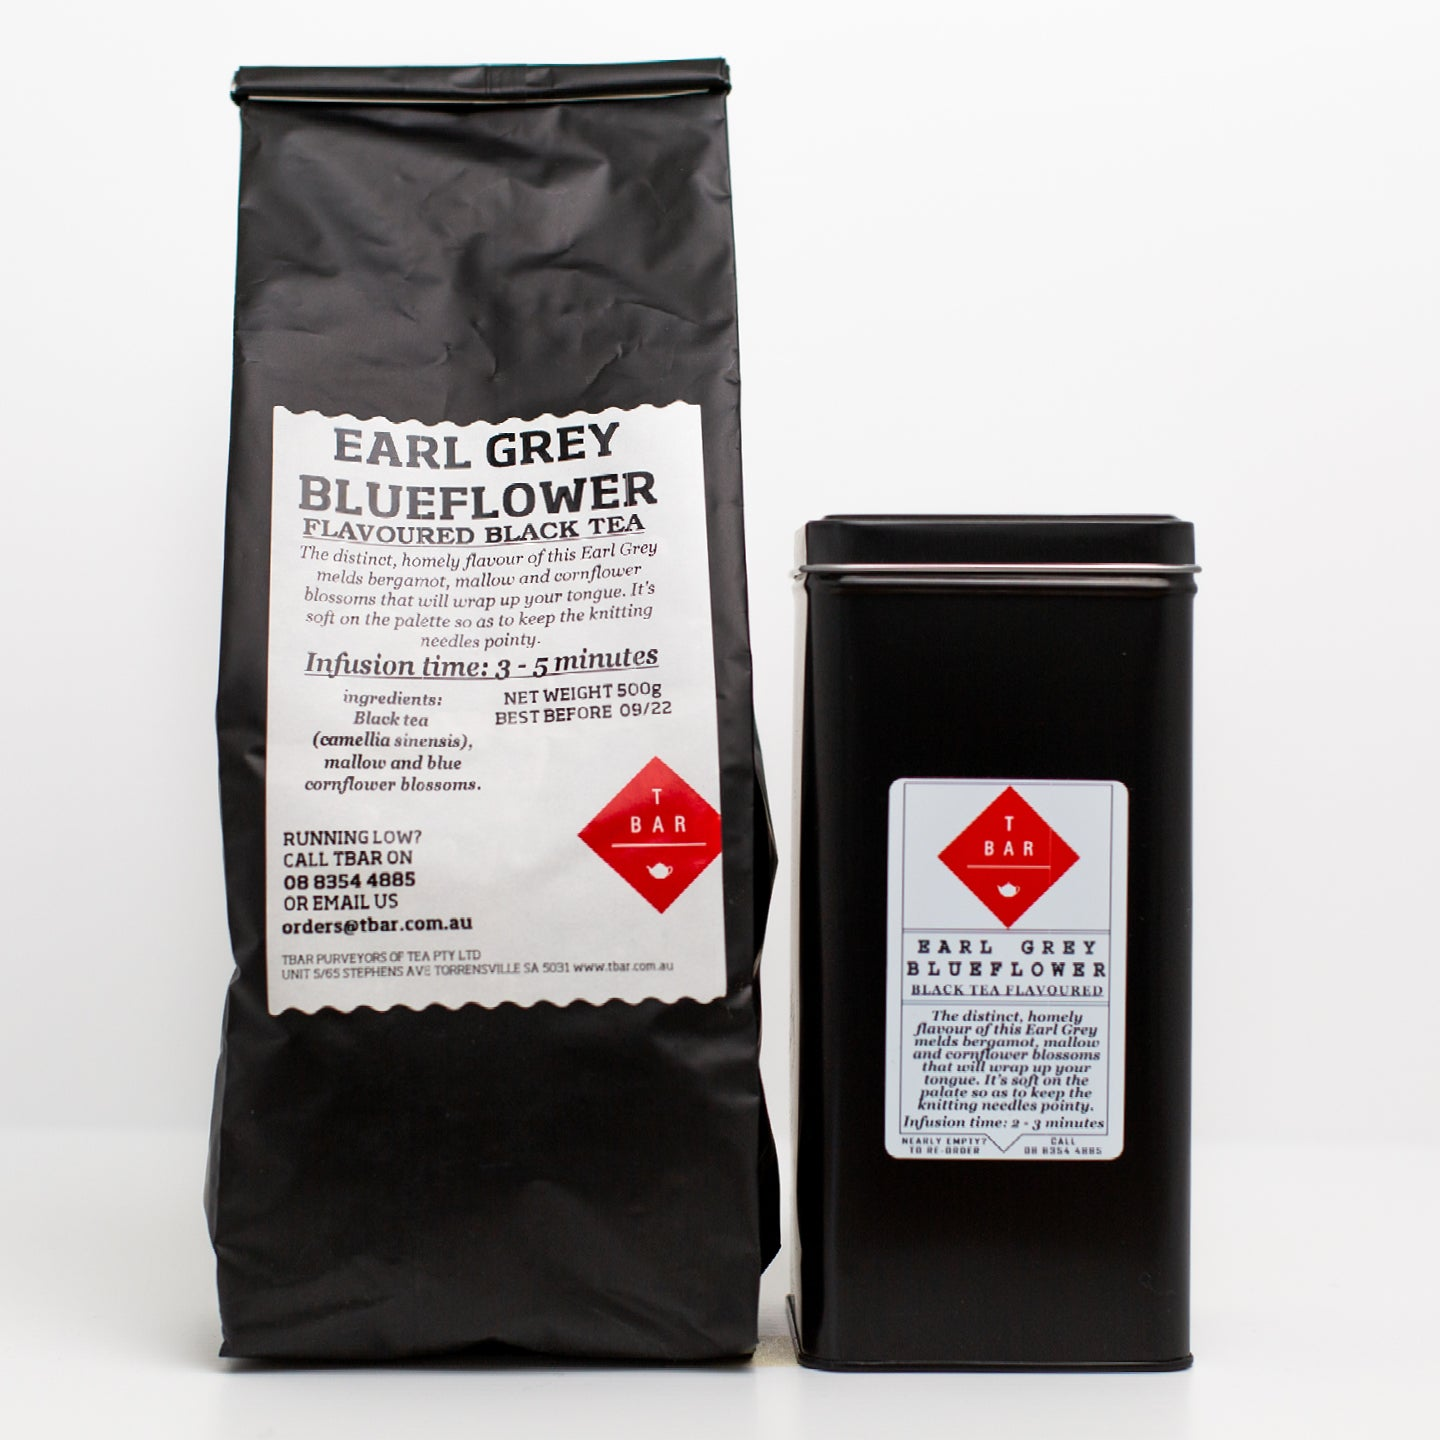 T-Bar Earl Grey Blueflower Loose Leaf Tea 500g